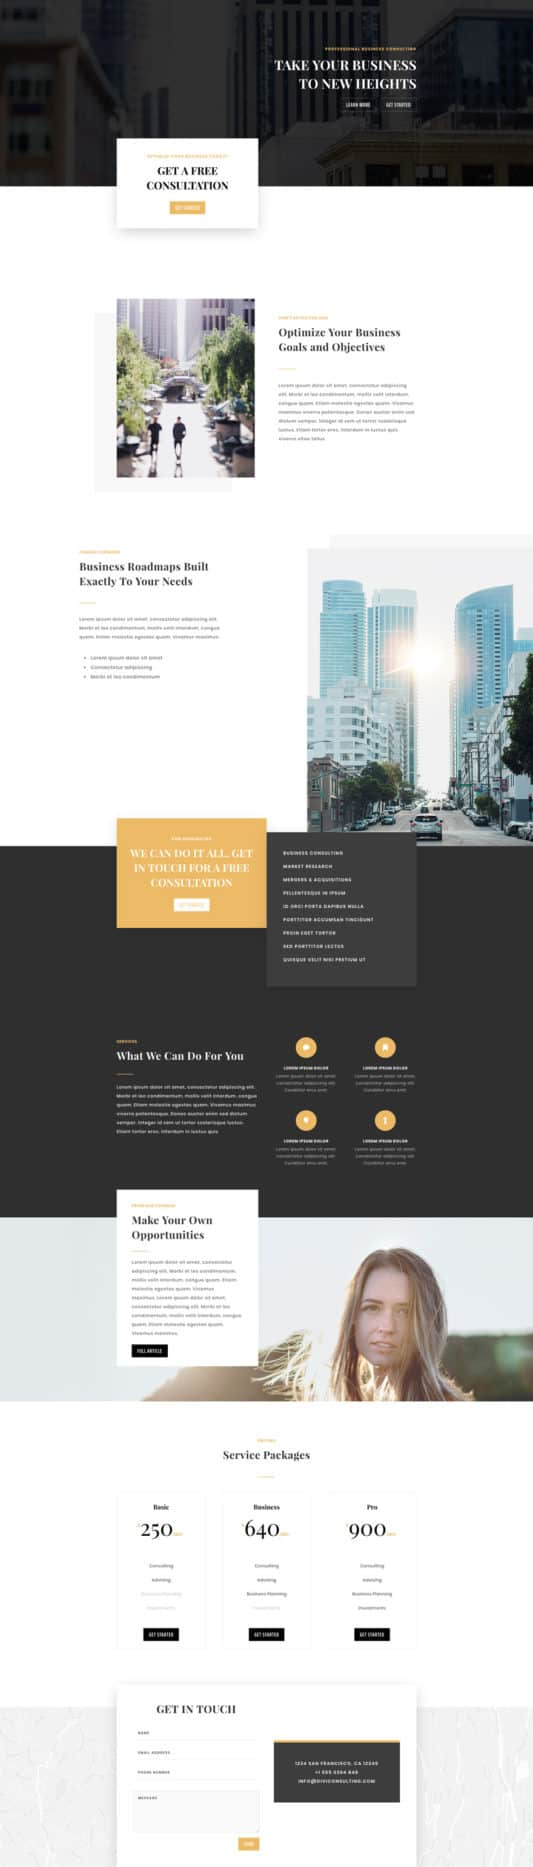 Business Consultant Web Design 6